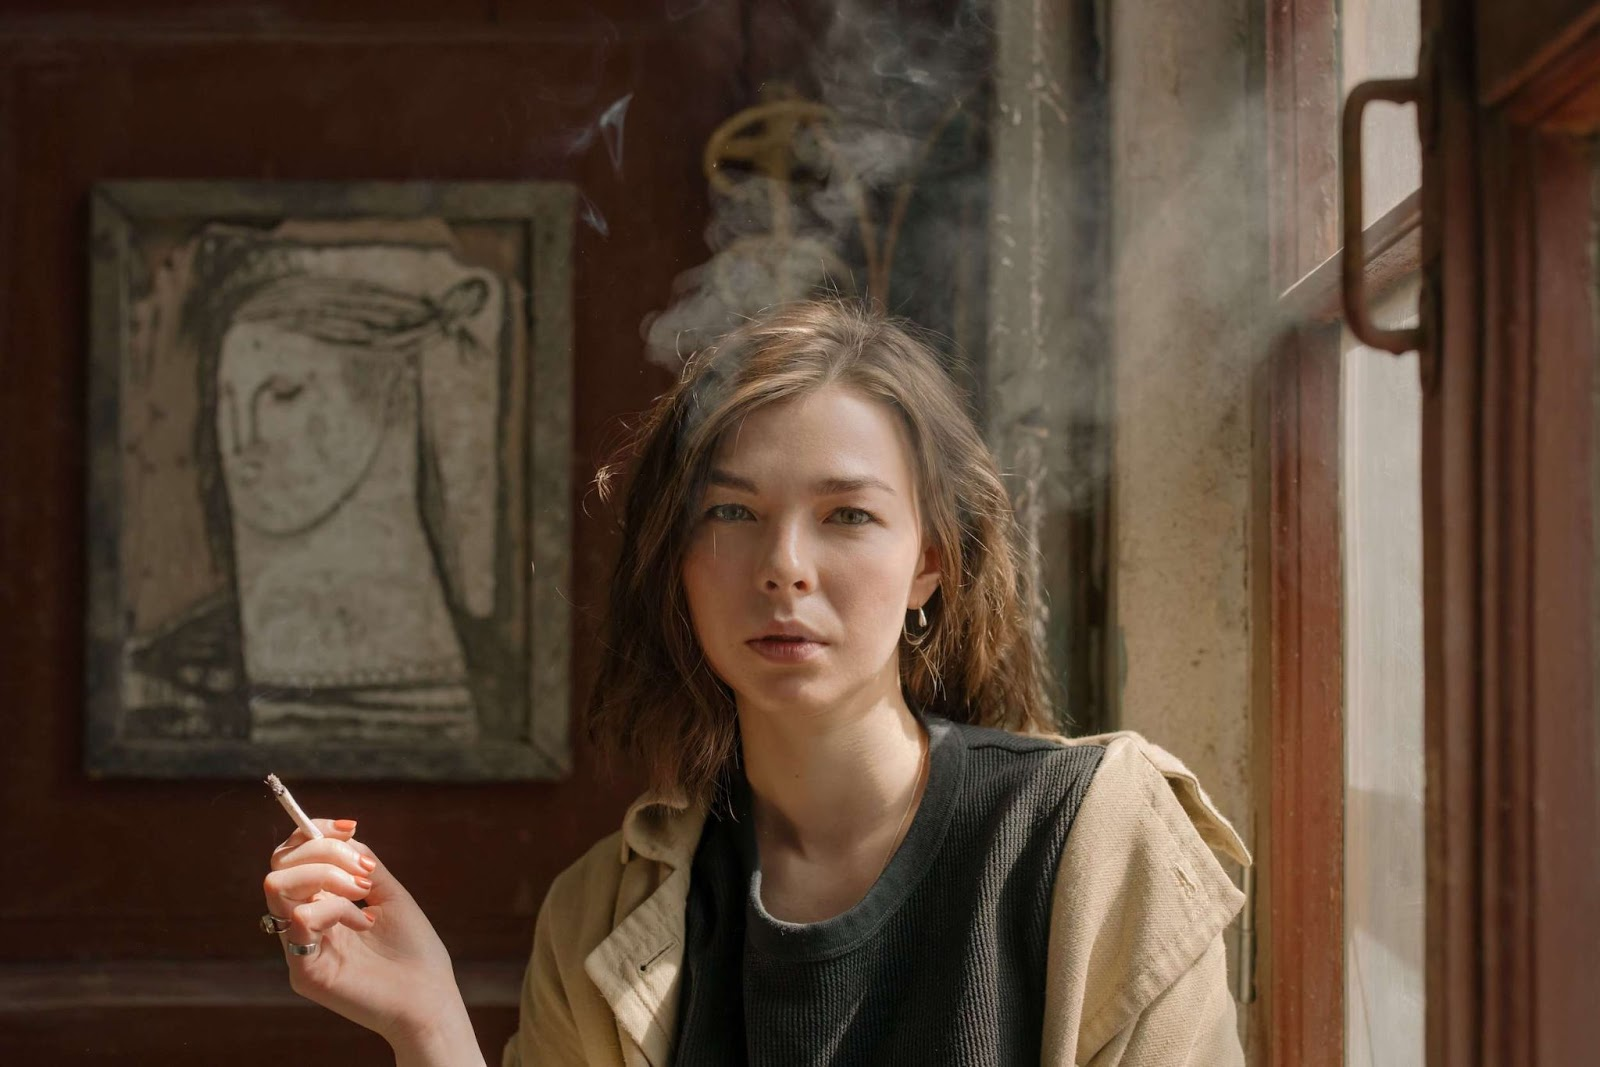 A woman smoking and looking directly into camera, the smoke swirling around her head in the light of the nearby window